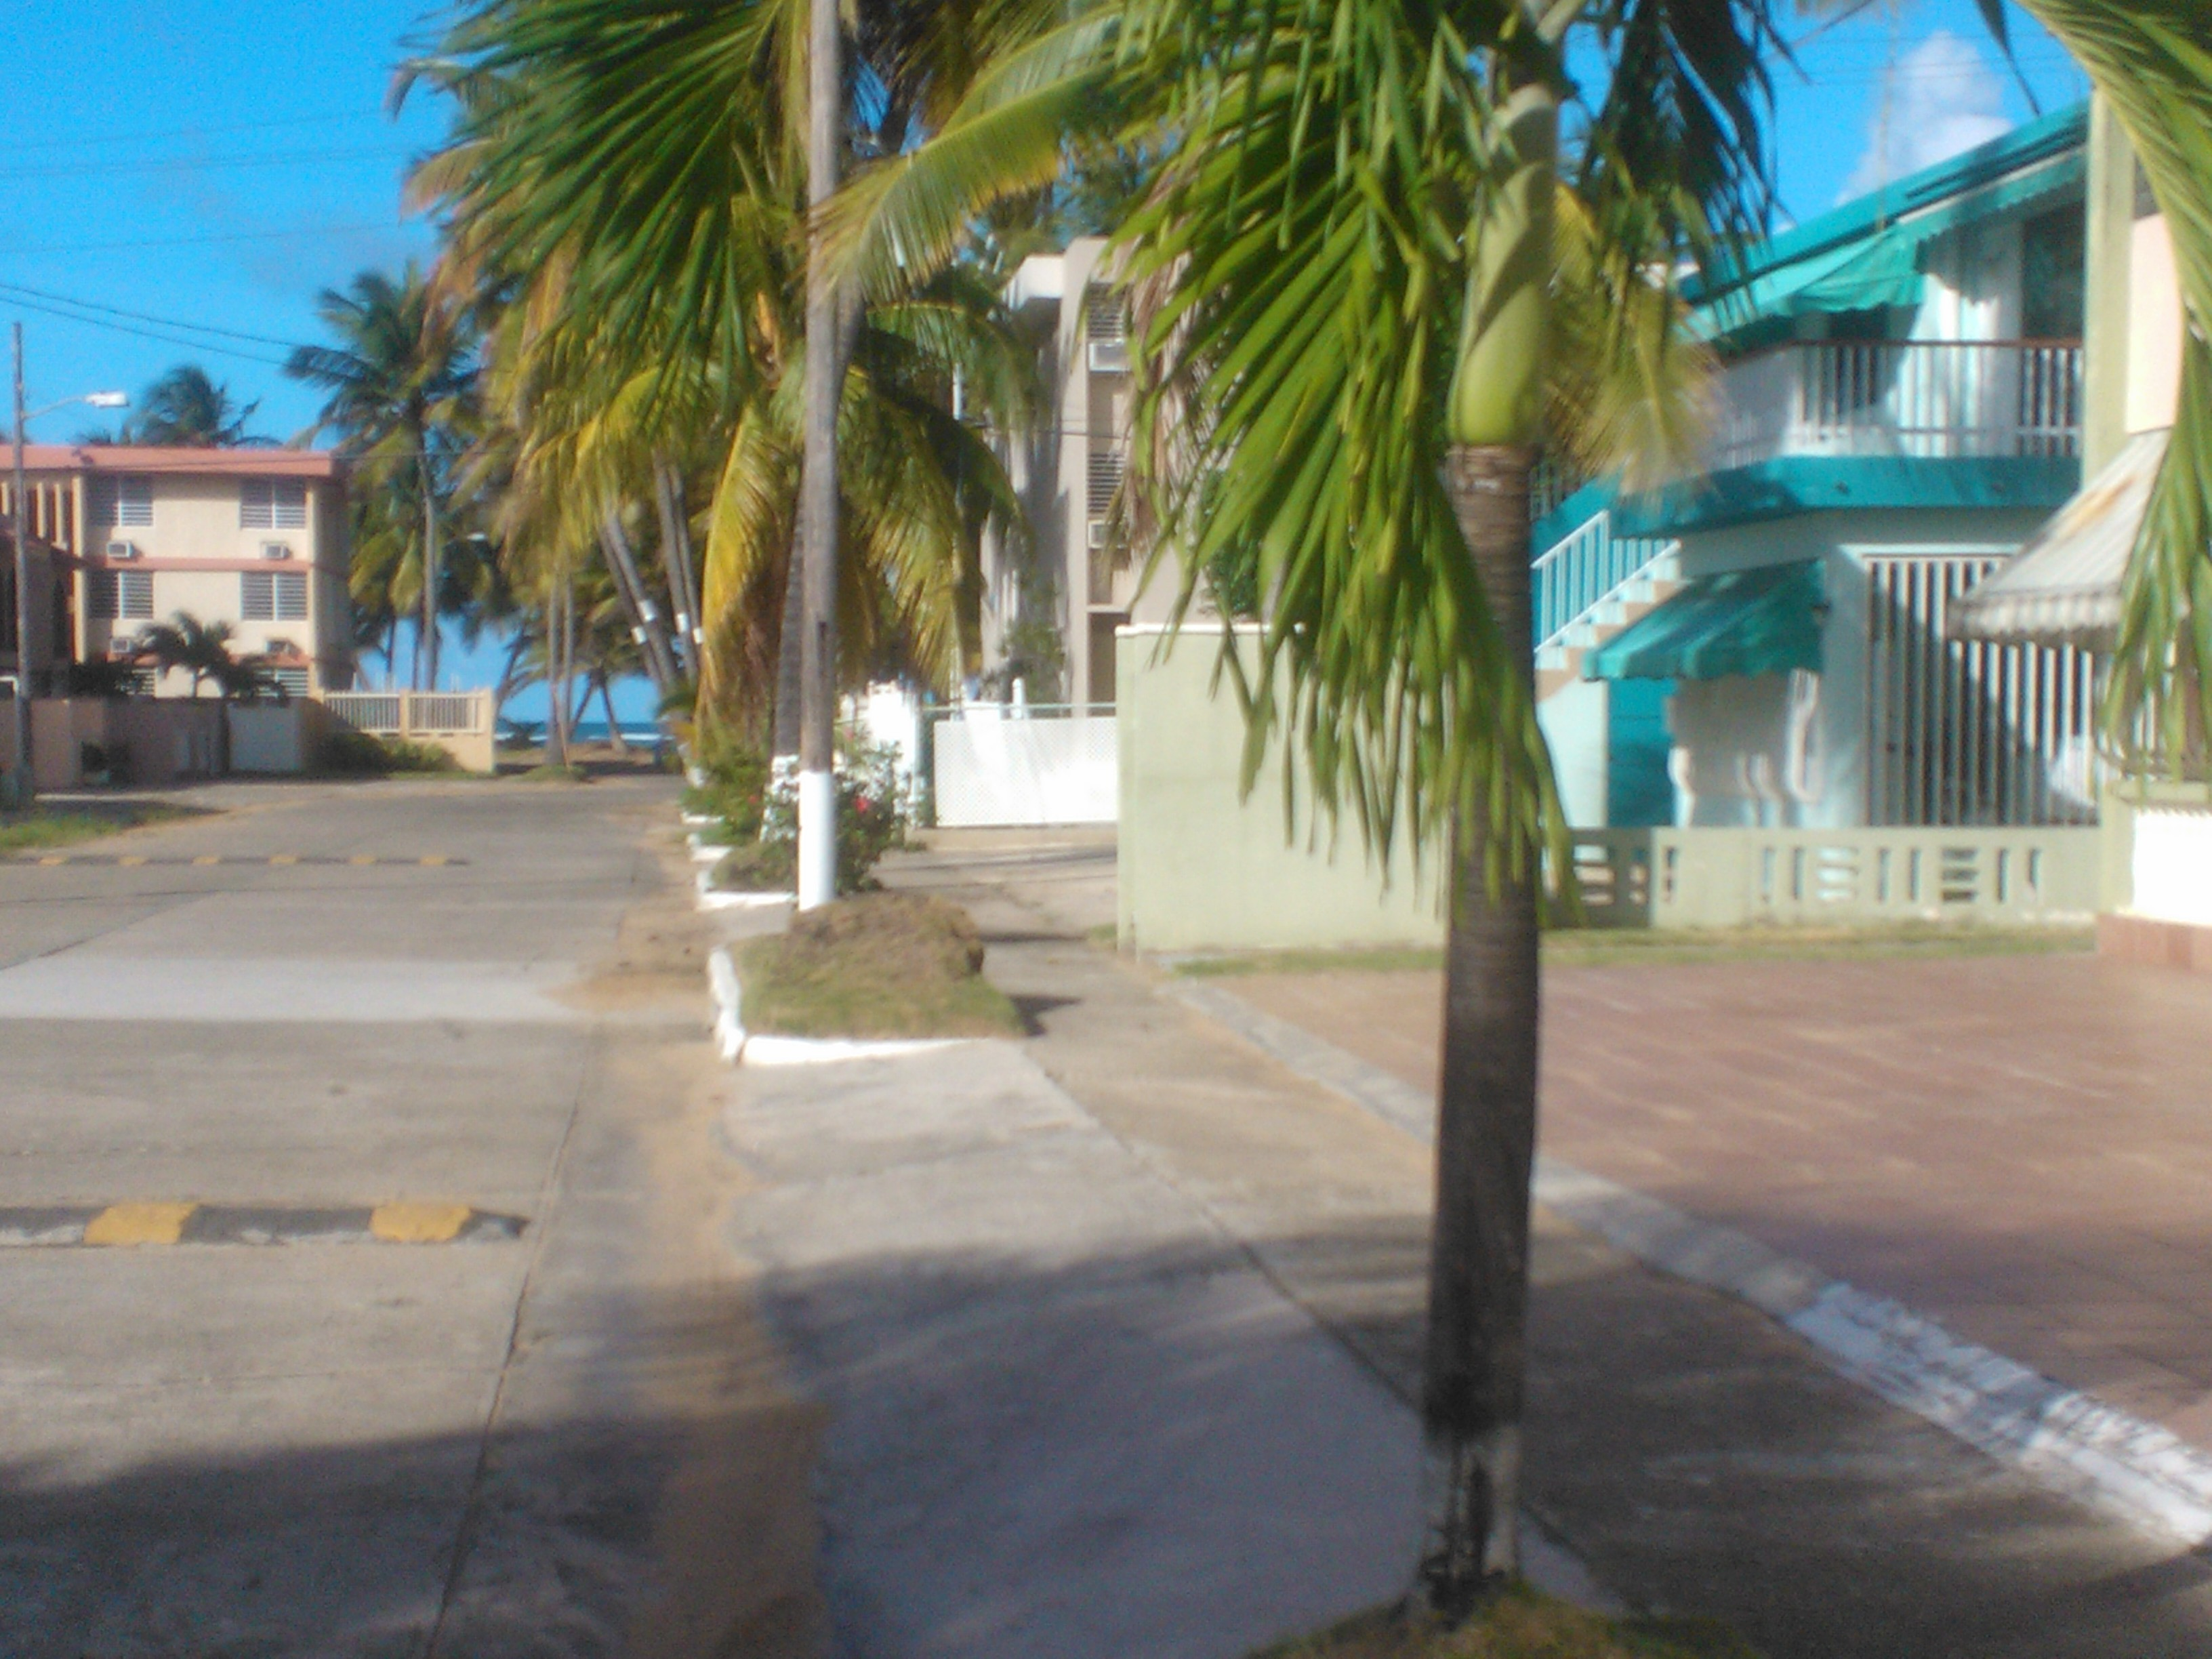 Street view of beach from drive